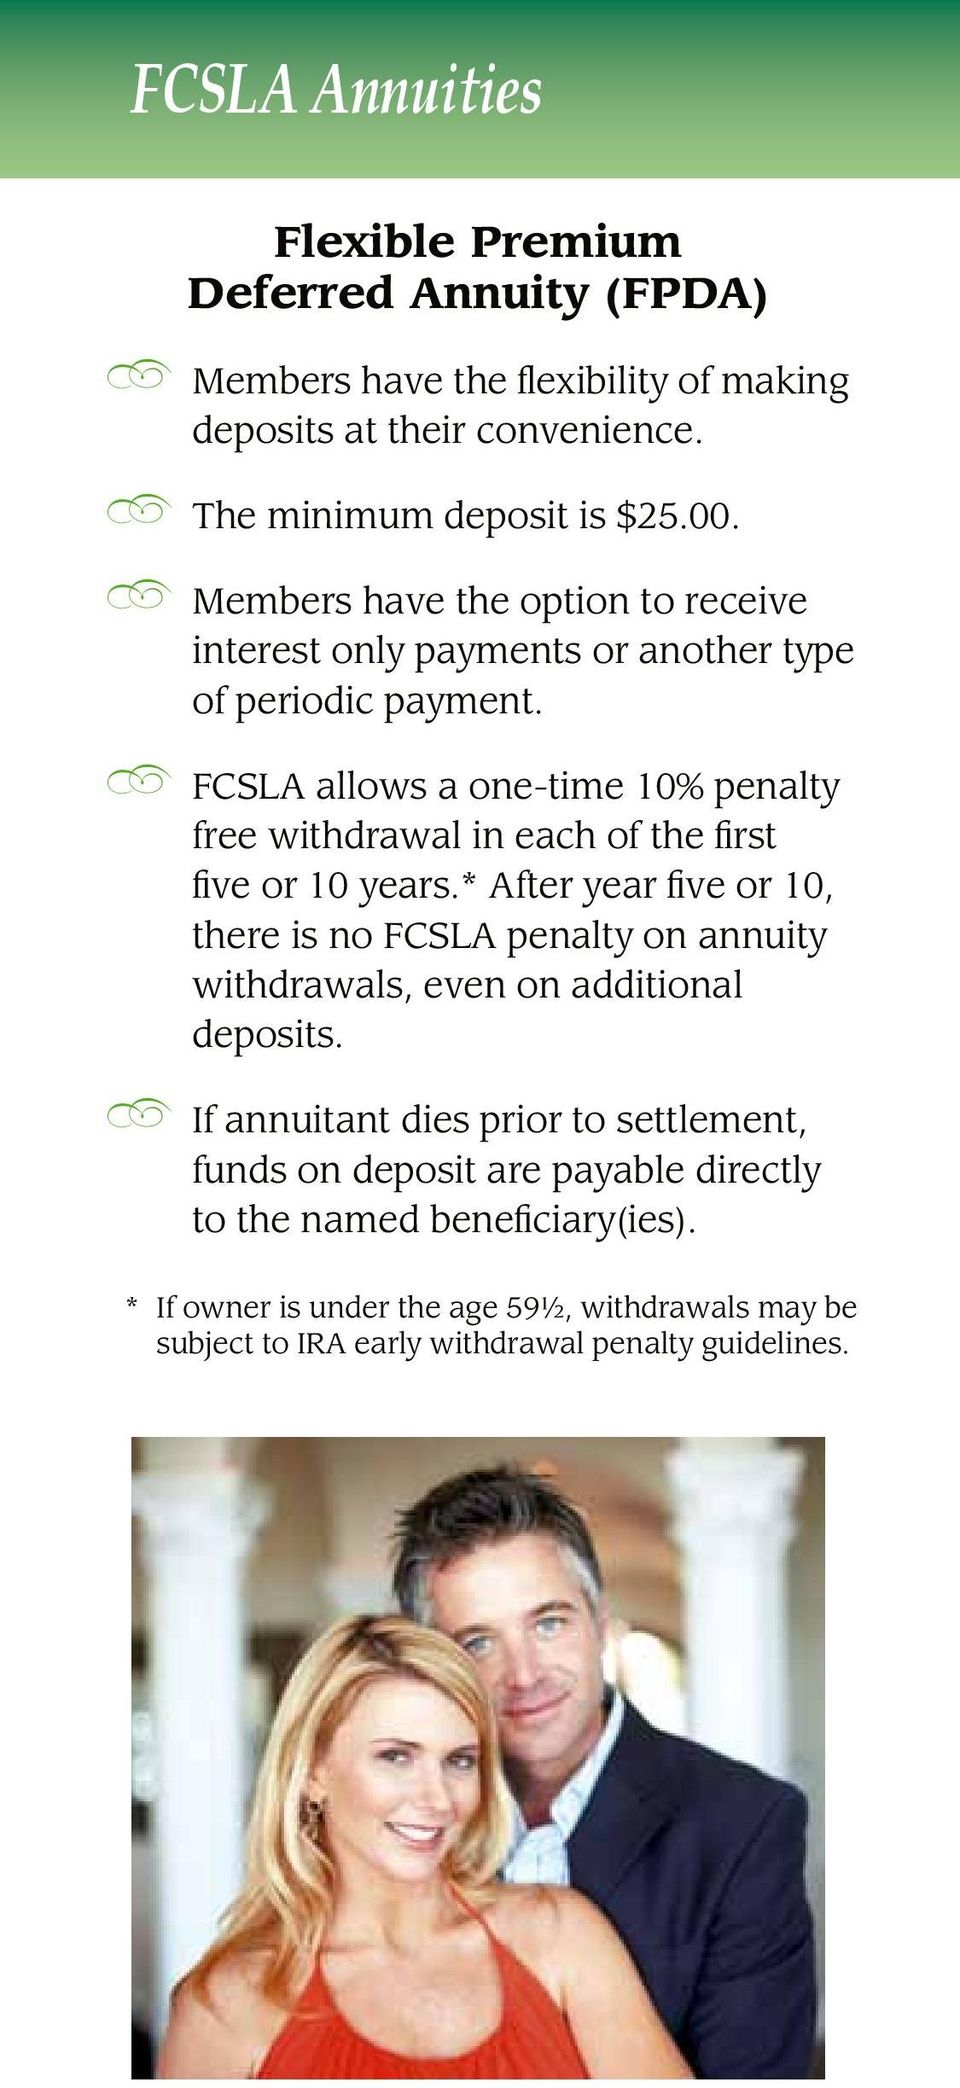 FCSLA allows a one-time 10% penalty free withdrawal in each of the first five or 10 years.